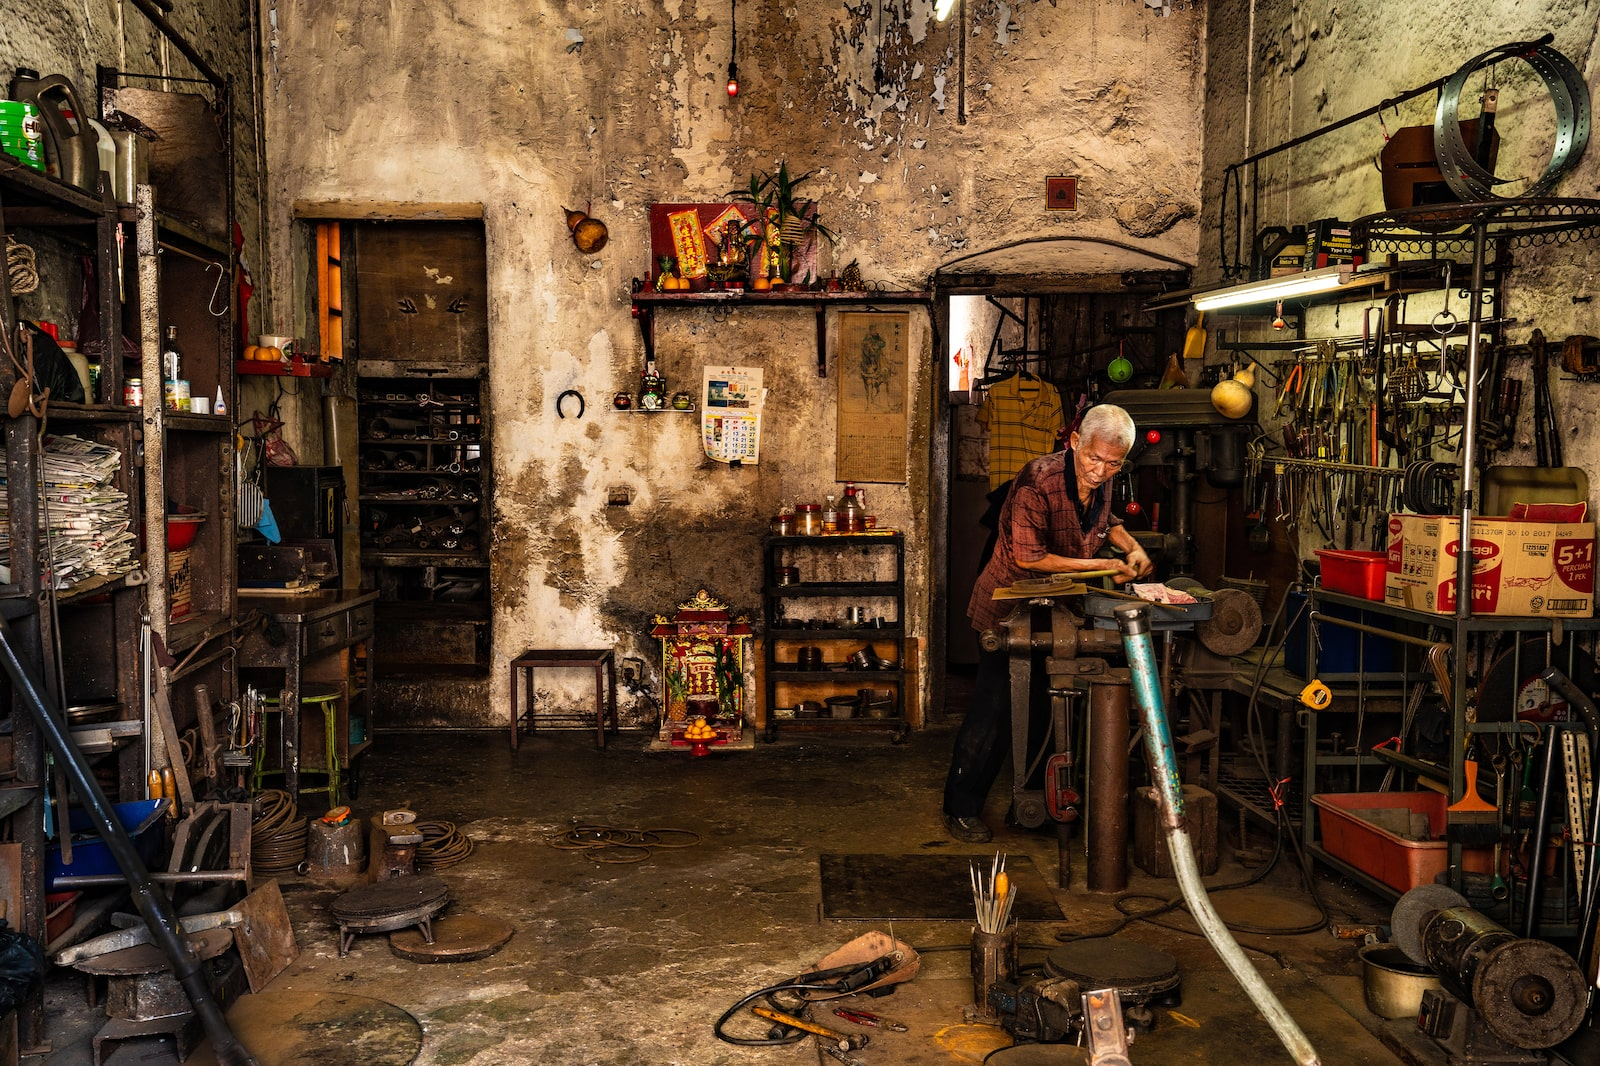 Inside an old shophouse of a cobbler